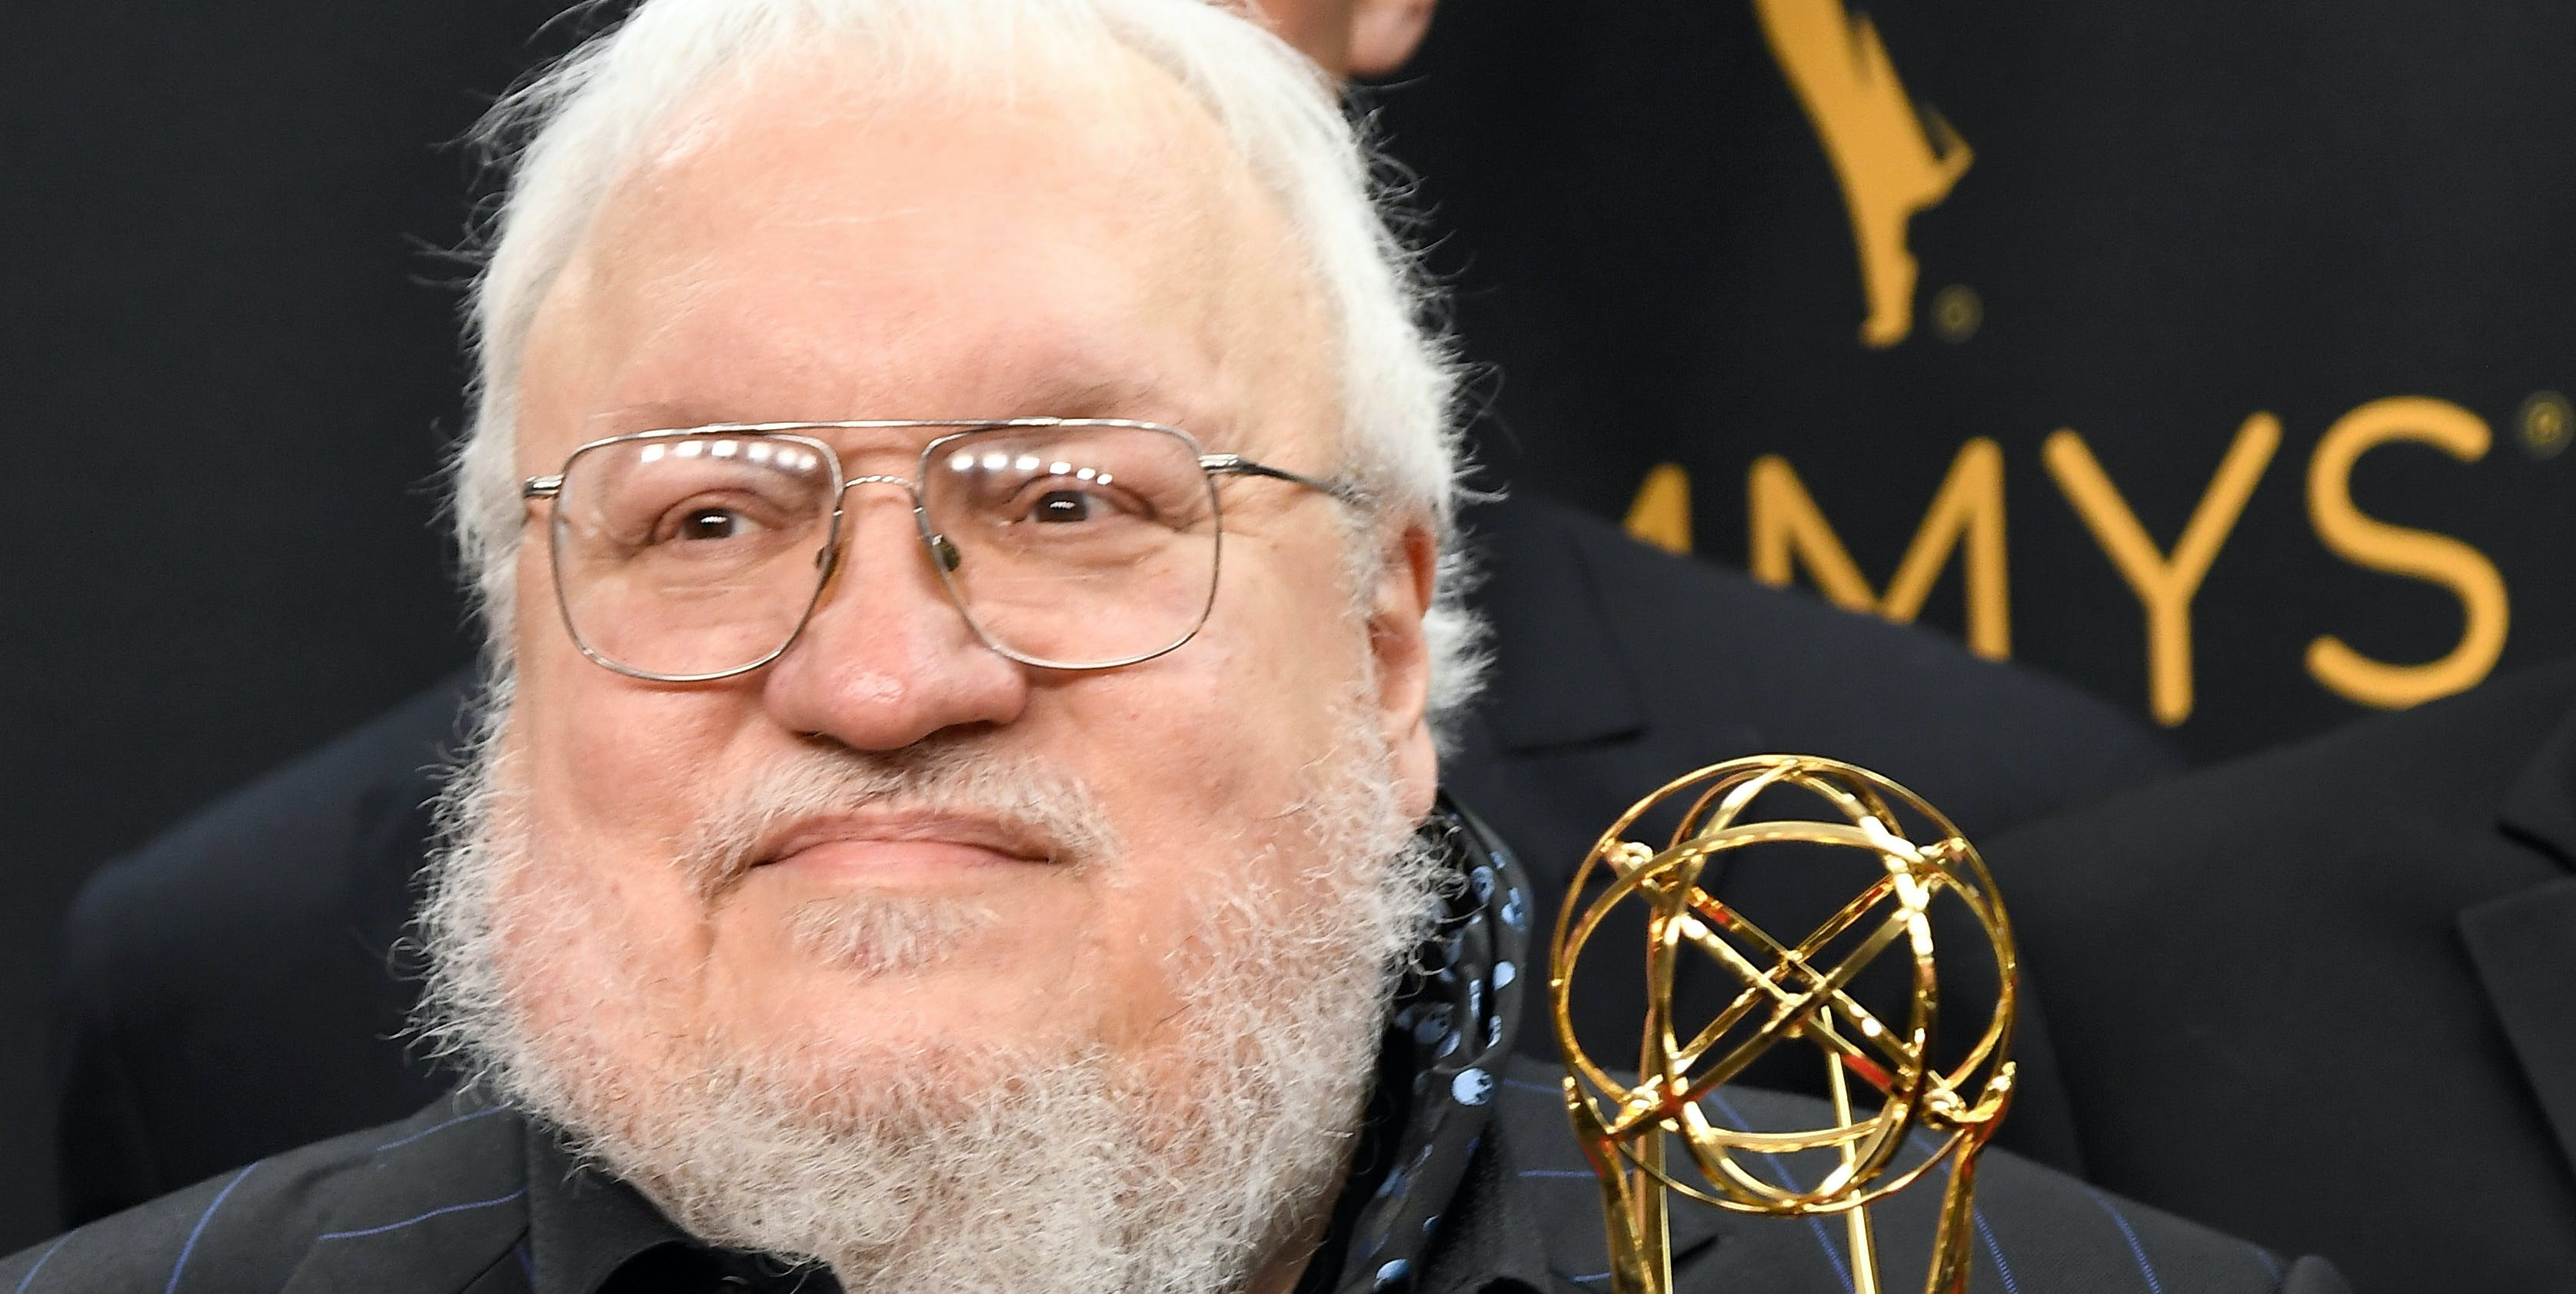 LOS ANGELES, CA - SEPTEMBER 18: Author George R. R. Martin, winner of Best Drama Series for 'Game of Thrones', poses in the press room during the 68th Annual Primetime Emmy Awards at Microsoft Theater on September 18, 2016 in Los Angeles, California.  (Photo by Frazer Harrison/Getty Images)